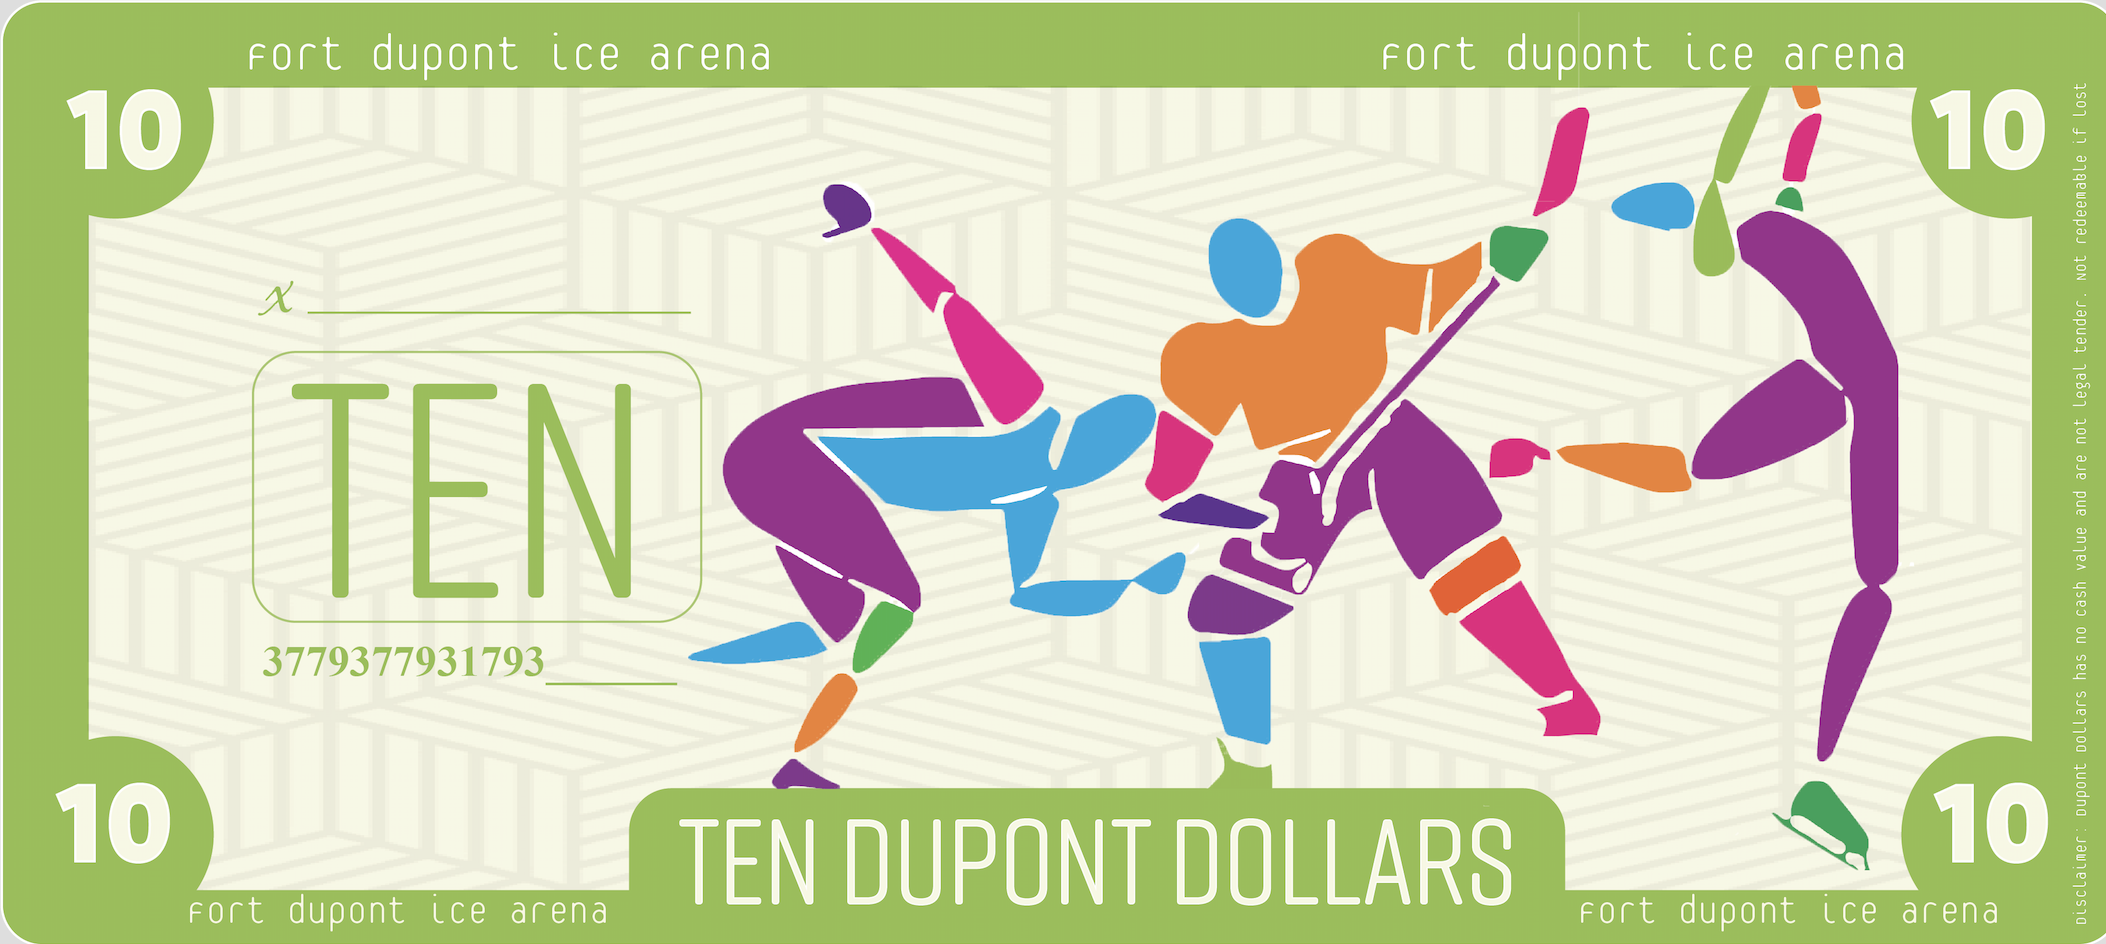 FDIA Dupont Dollars _ Ten